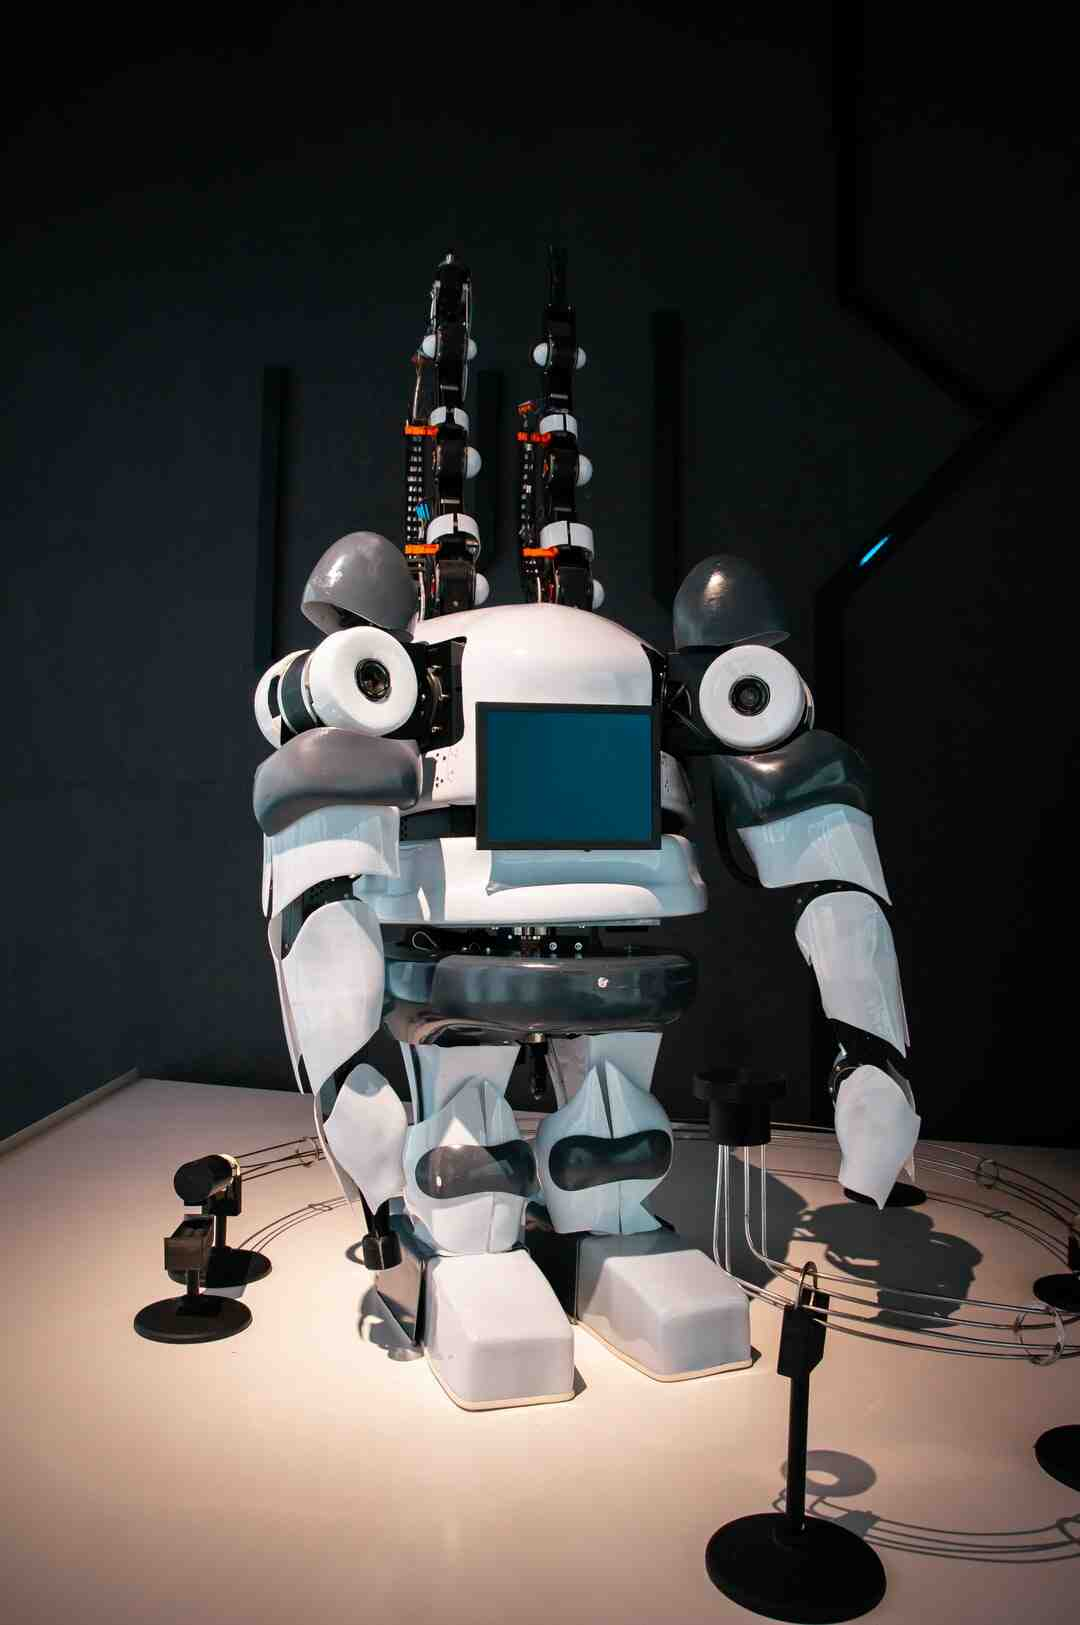 How robots are programmed